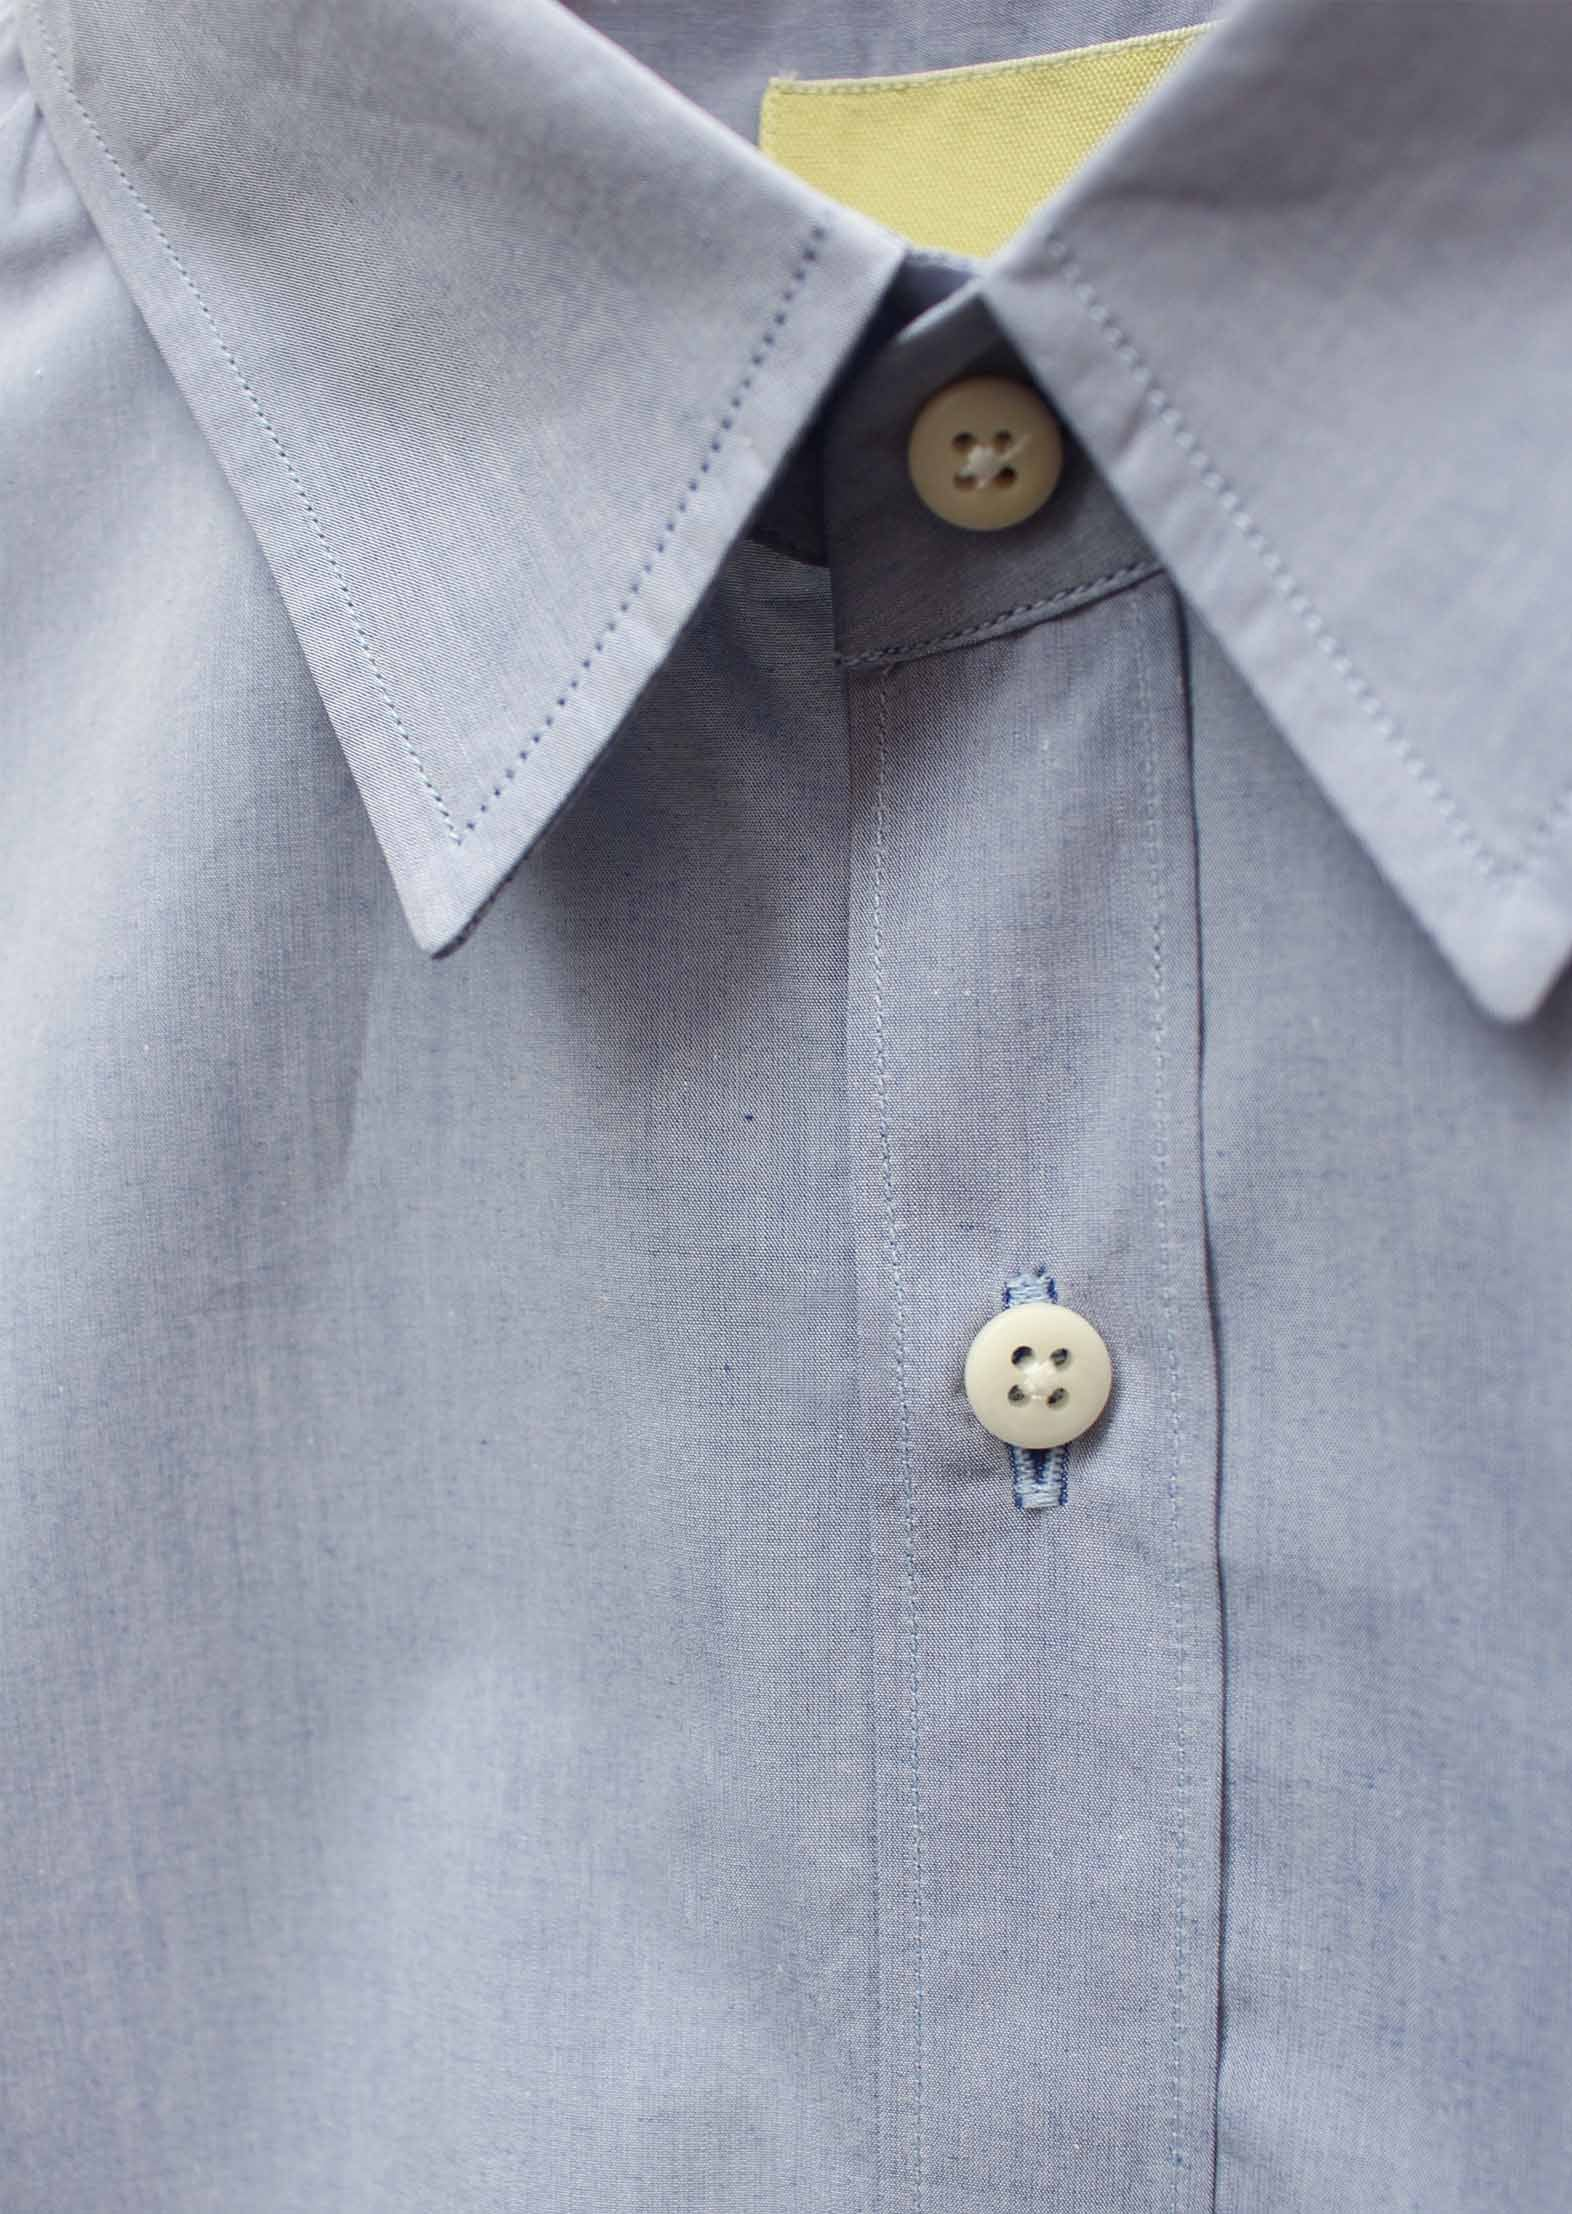 Essential shirt - Japanese paper crisp cotton - Sky blue - De Bonne Facture